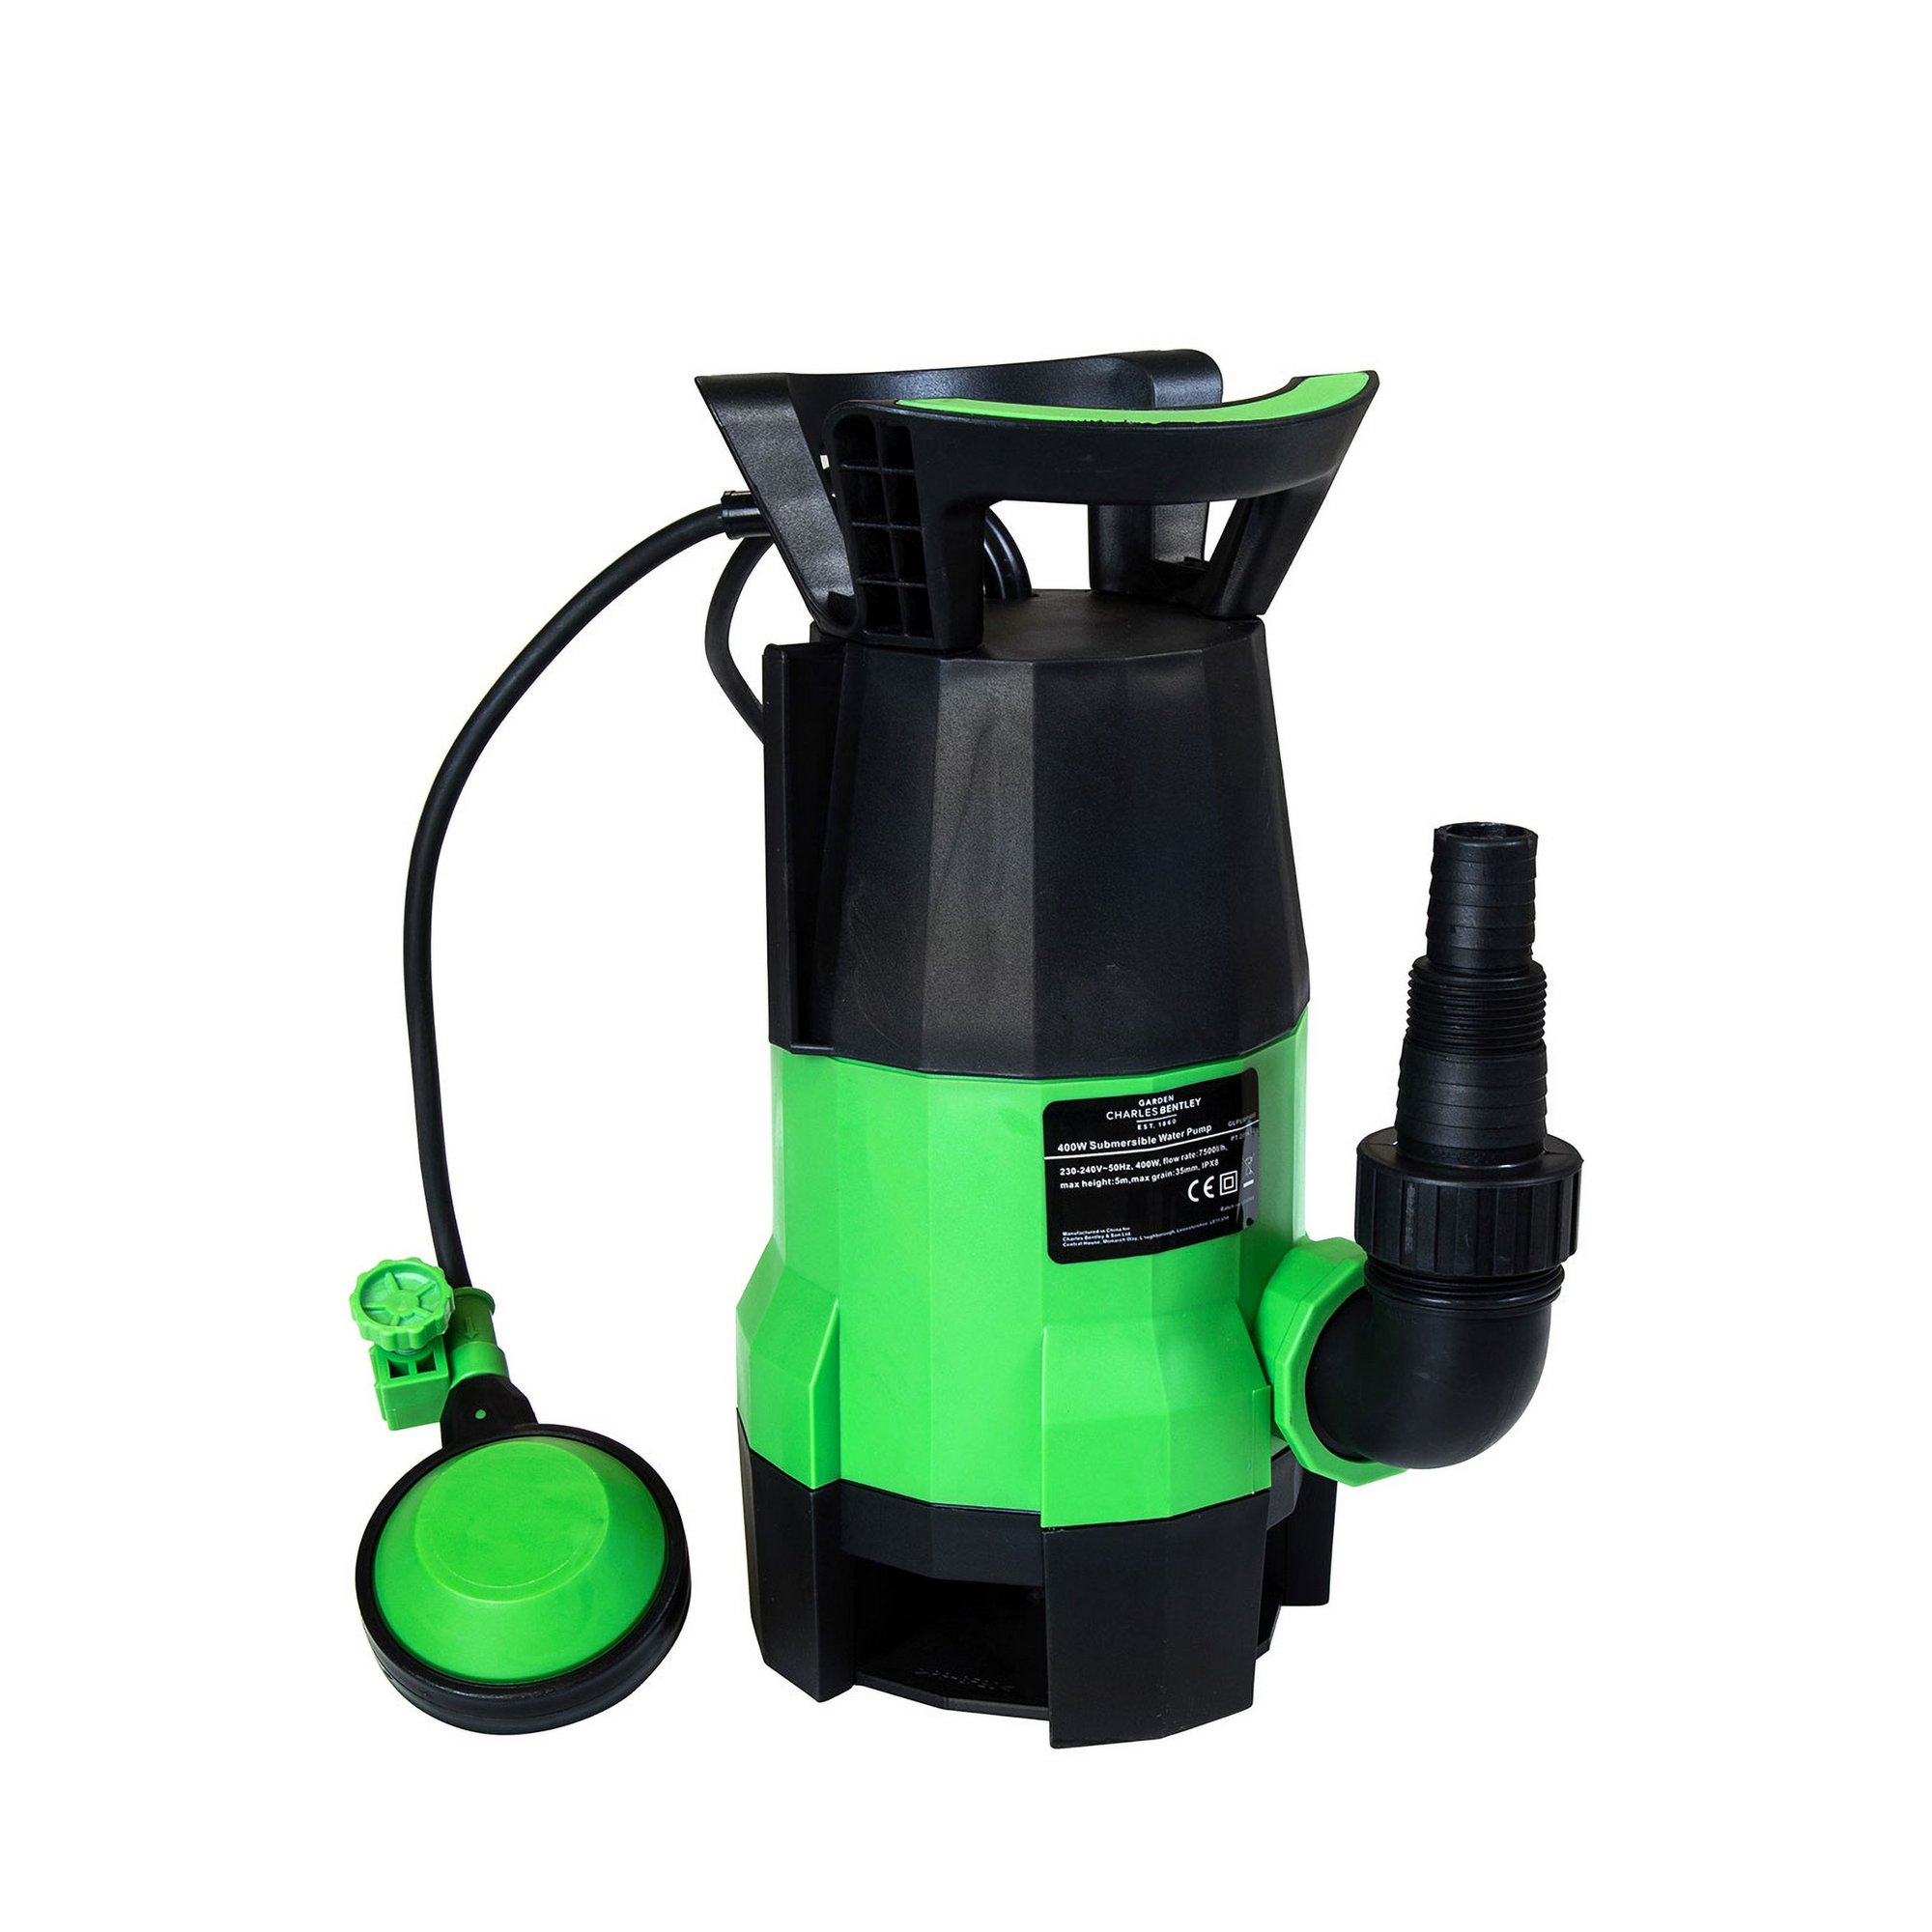 Image of Charles Bentley Electric Submersible Water Pump